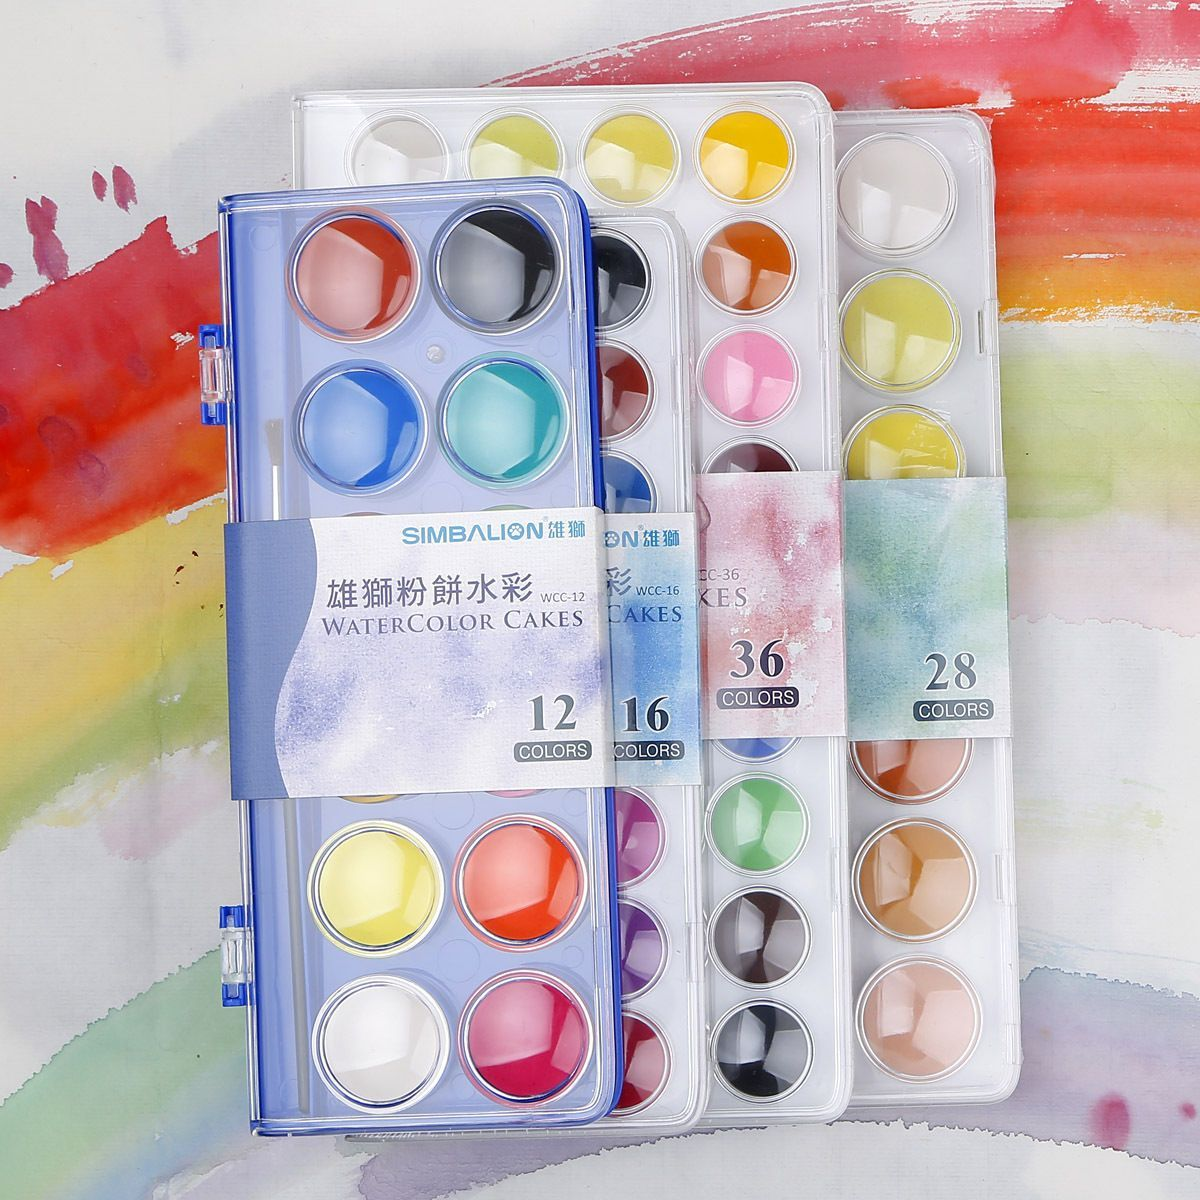 Simbalion 12 16 28 36 Colors Set Watercolor Cakes Solid Watercolor